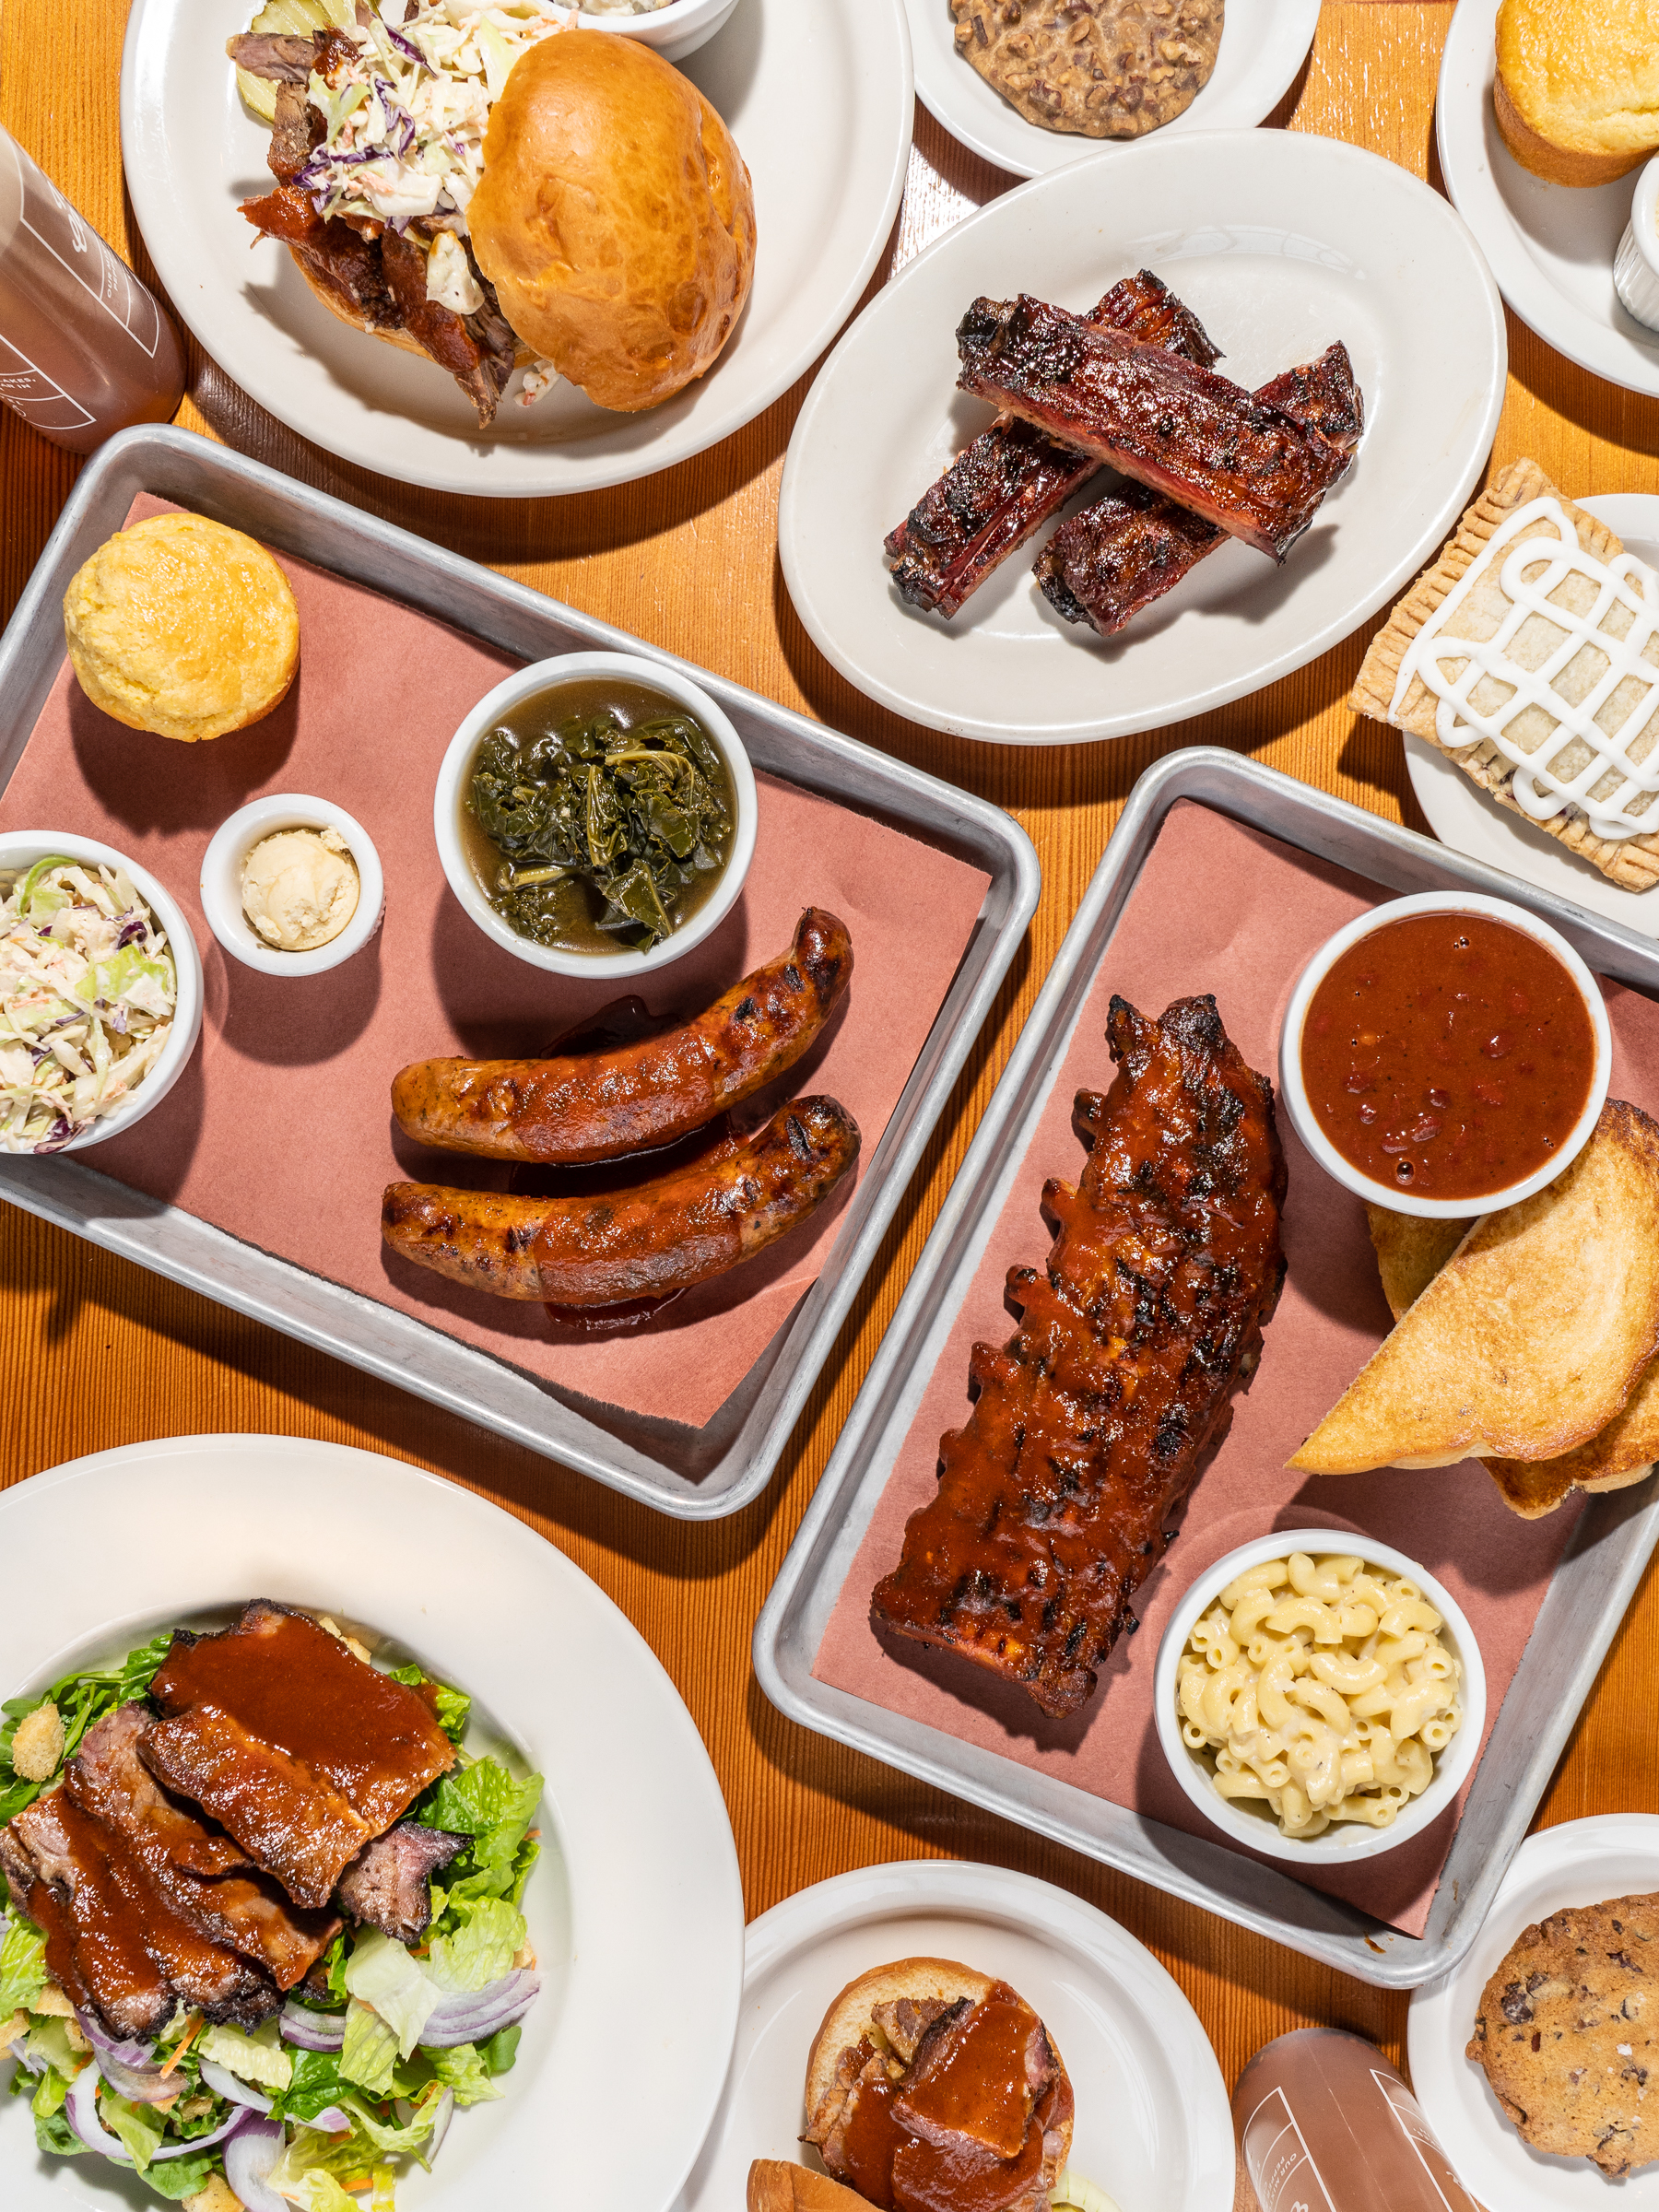 bbq barbecue food photography jeremy pawlowski canyon creative company for hire-3.jpg